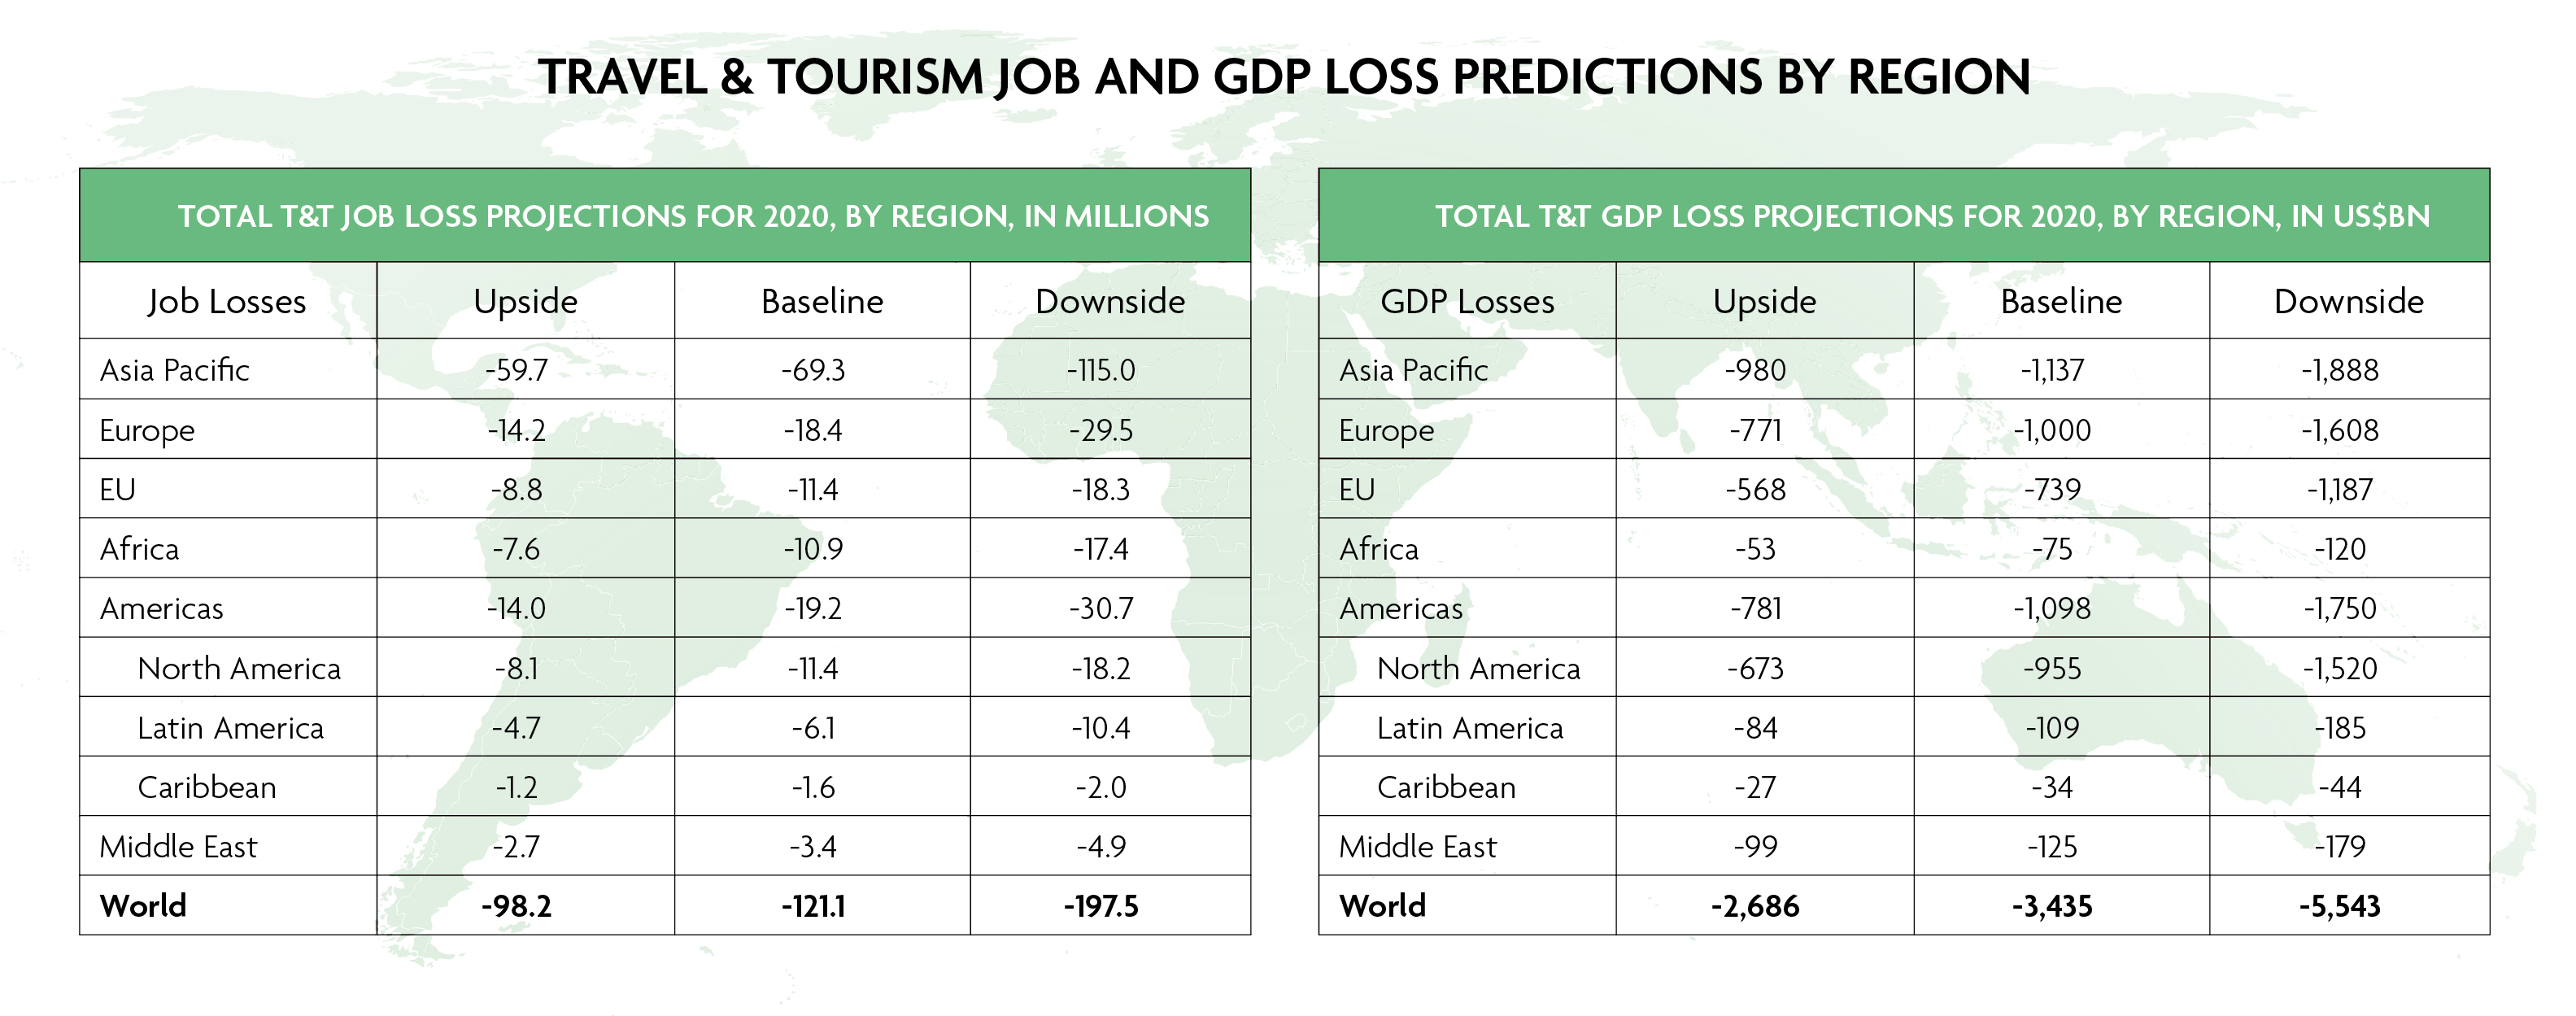 More than 197m Travel & Tourism jobs will be lost due to prolonged travel restriction